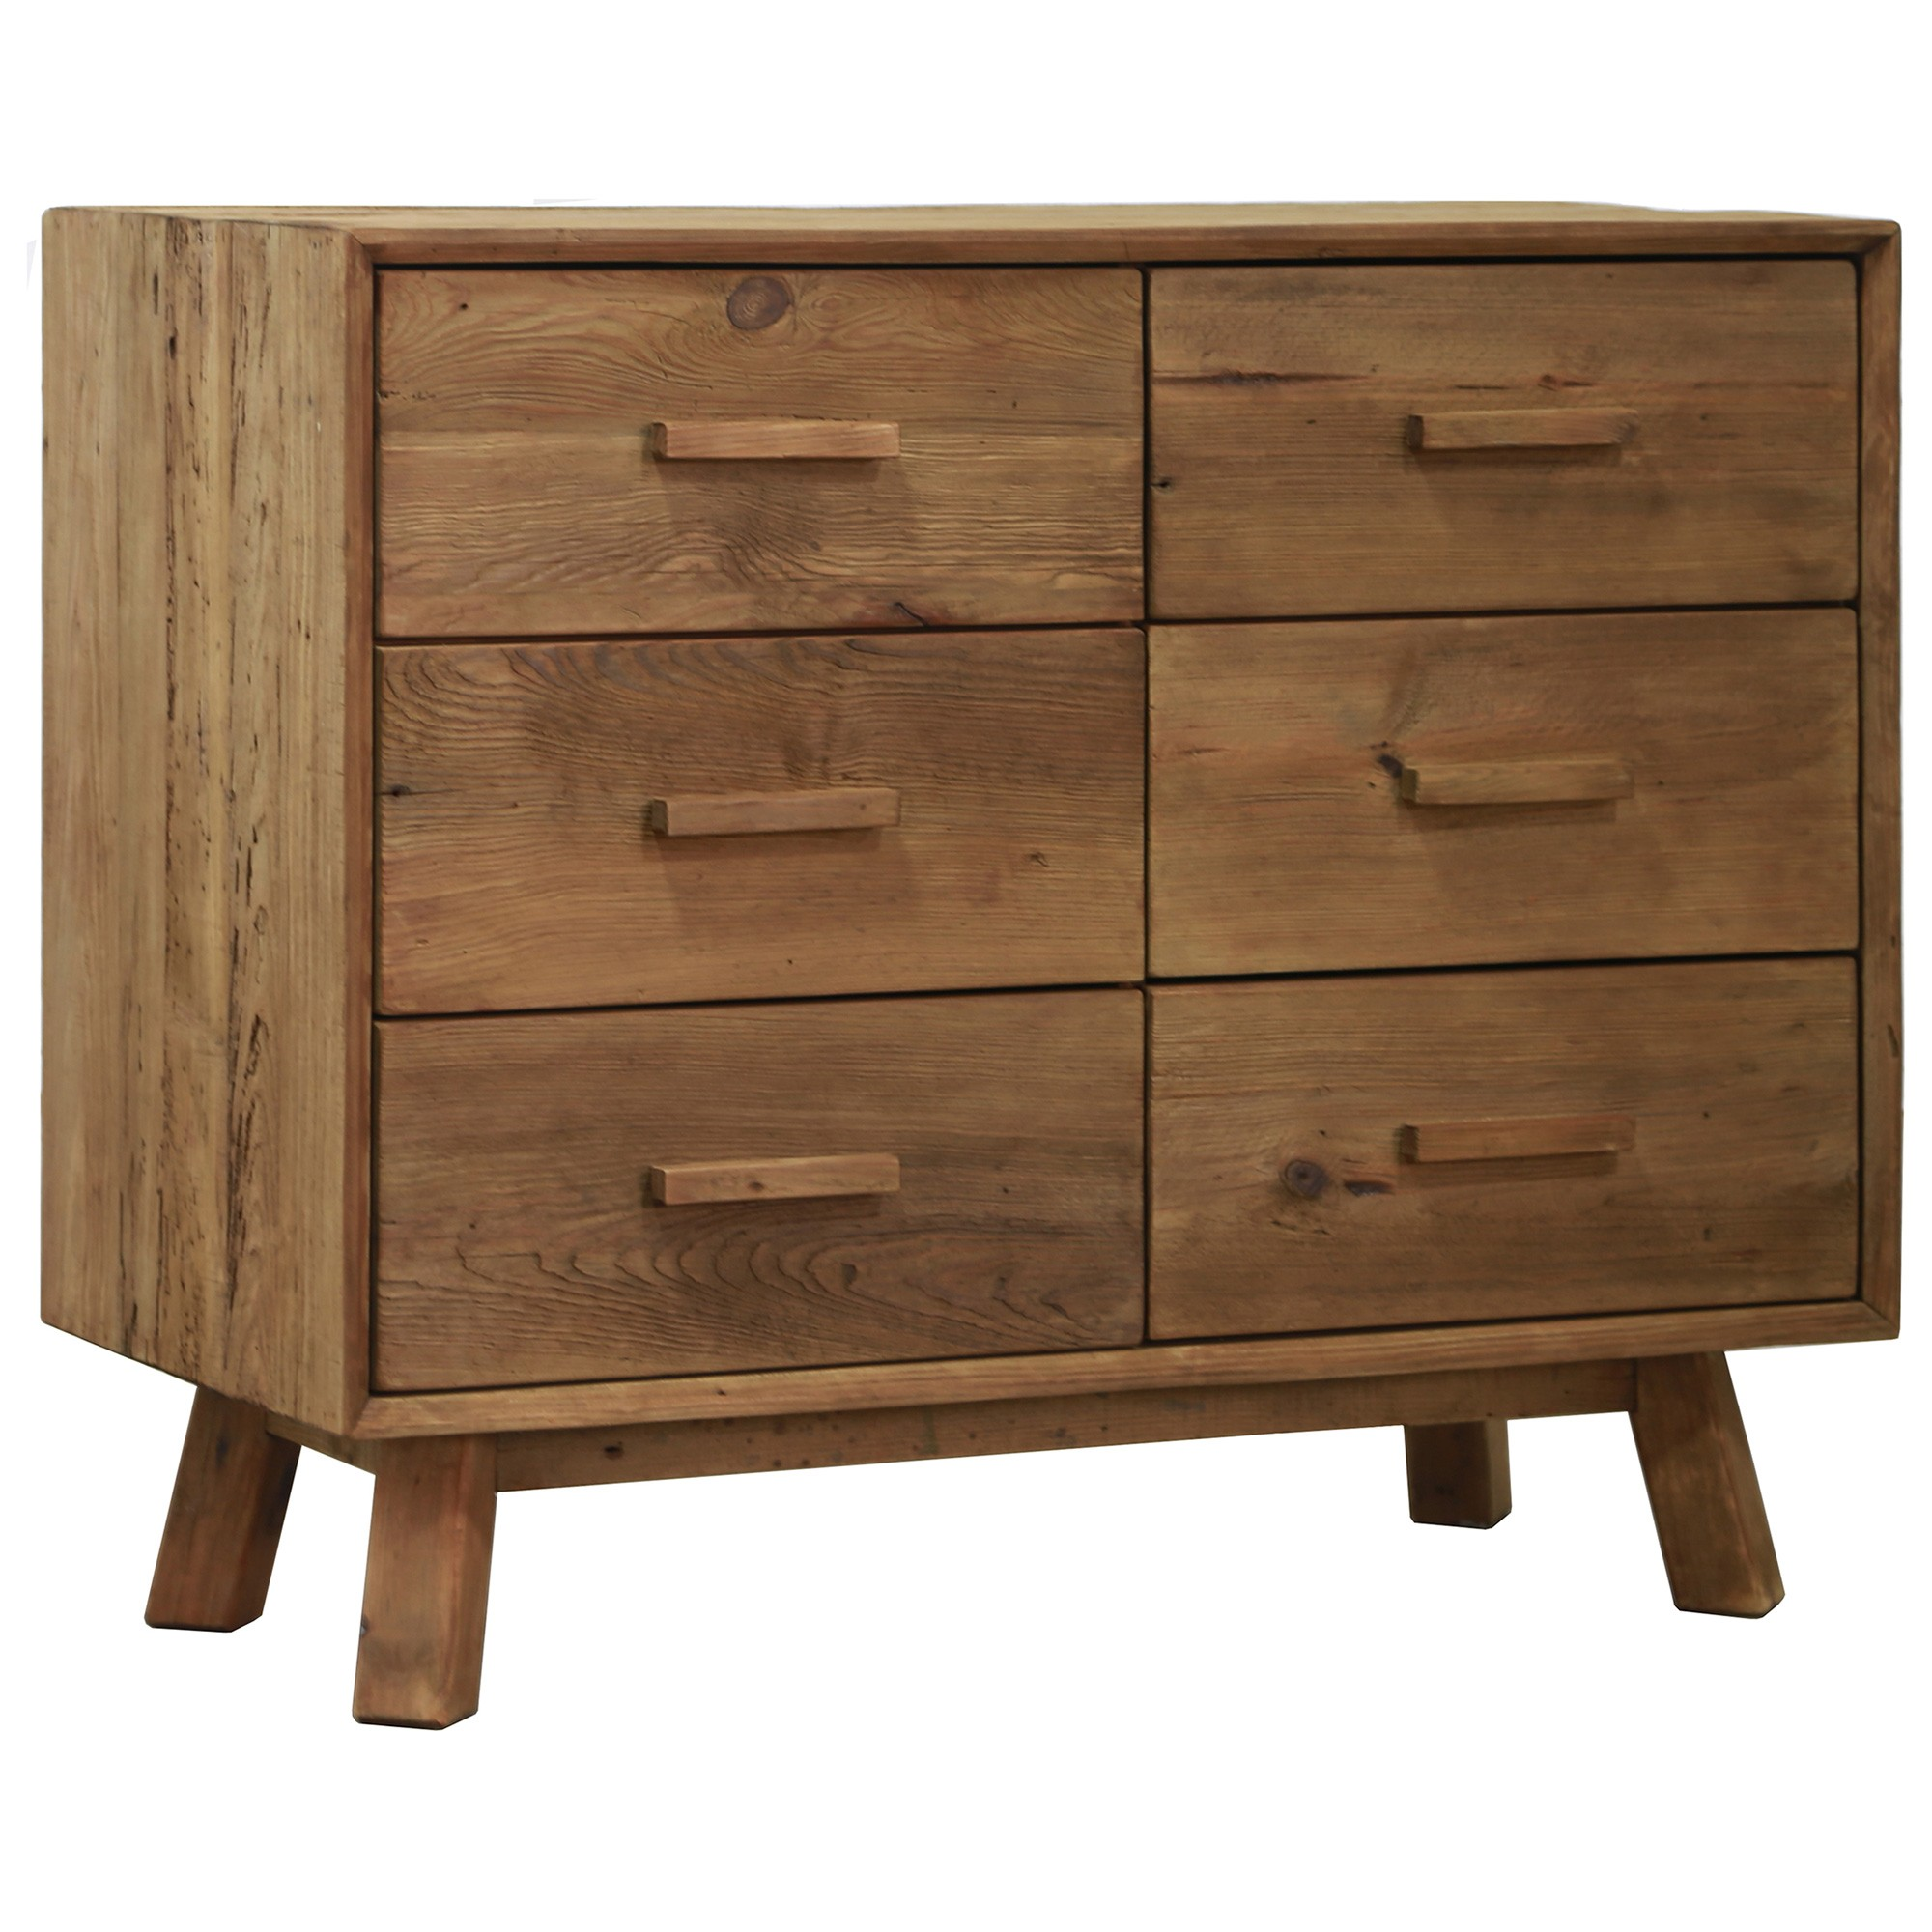 Mandalay Recycled Pine Timber 6 Drawer Dresser